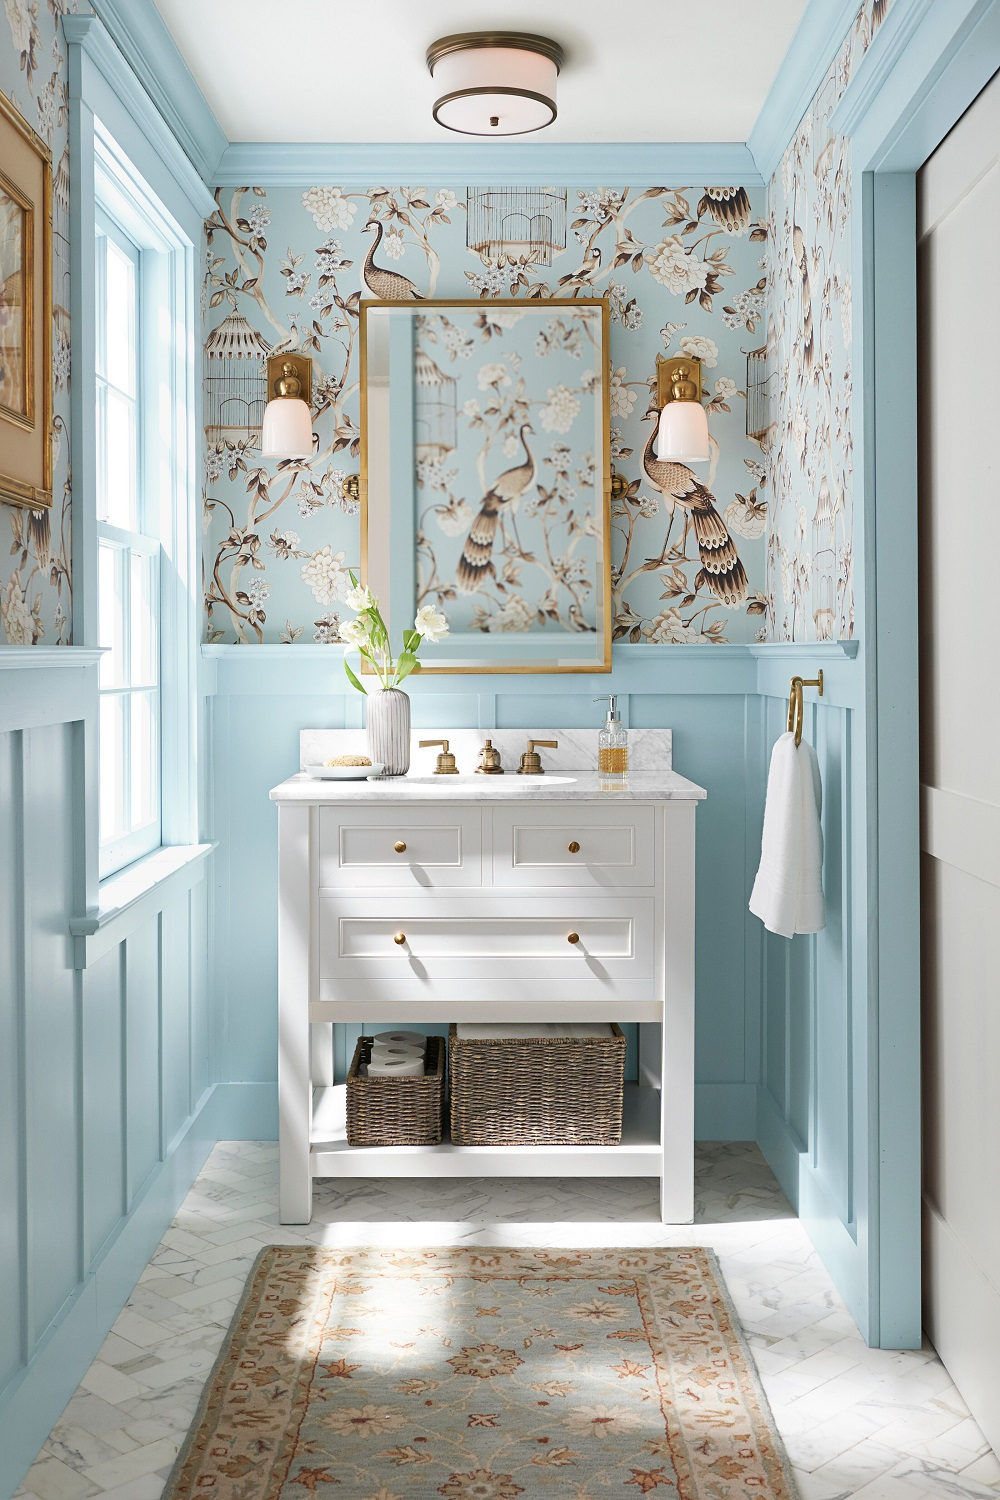 A serene spa-like powder room with classic white console, marble top, metal fixtures is set against a dramatic wall covering for a customized look.  Photo courtesy of Pottery Barn.